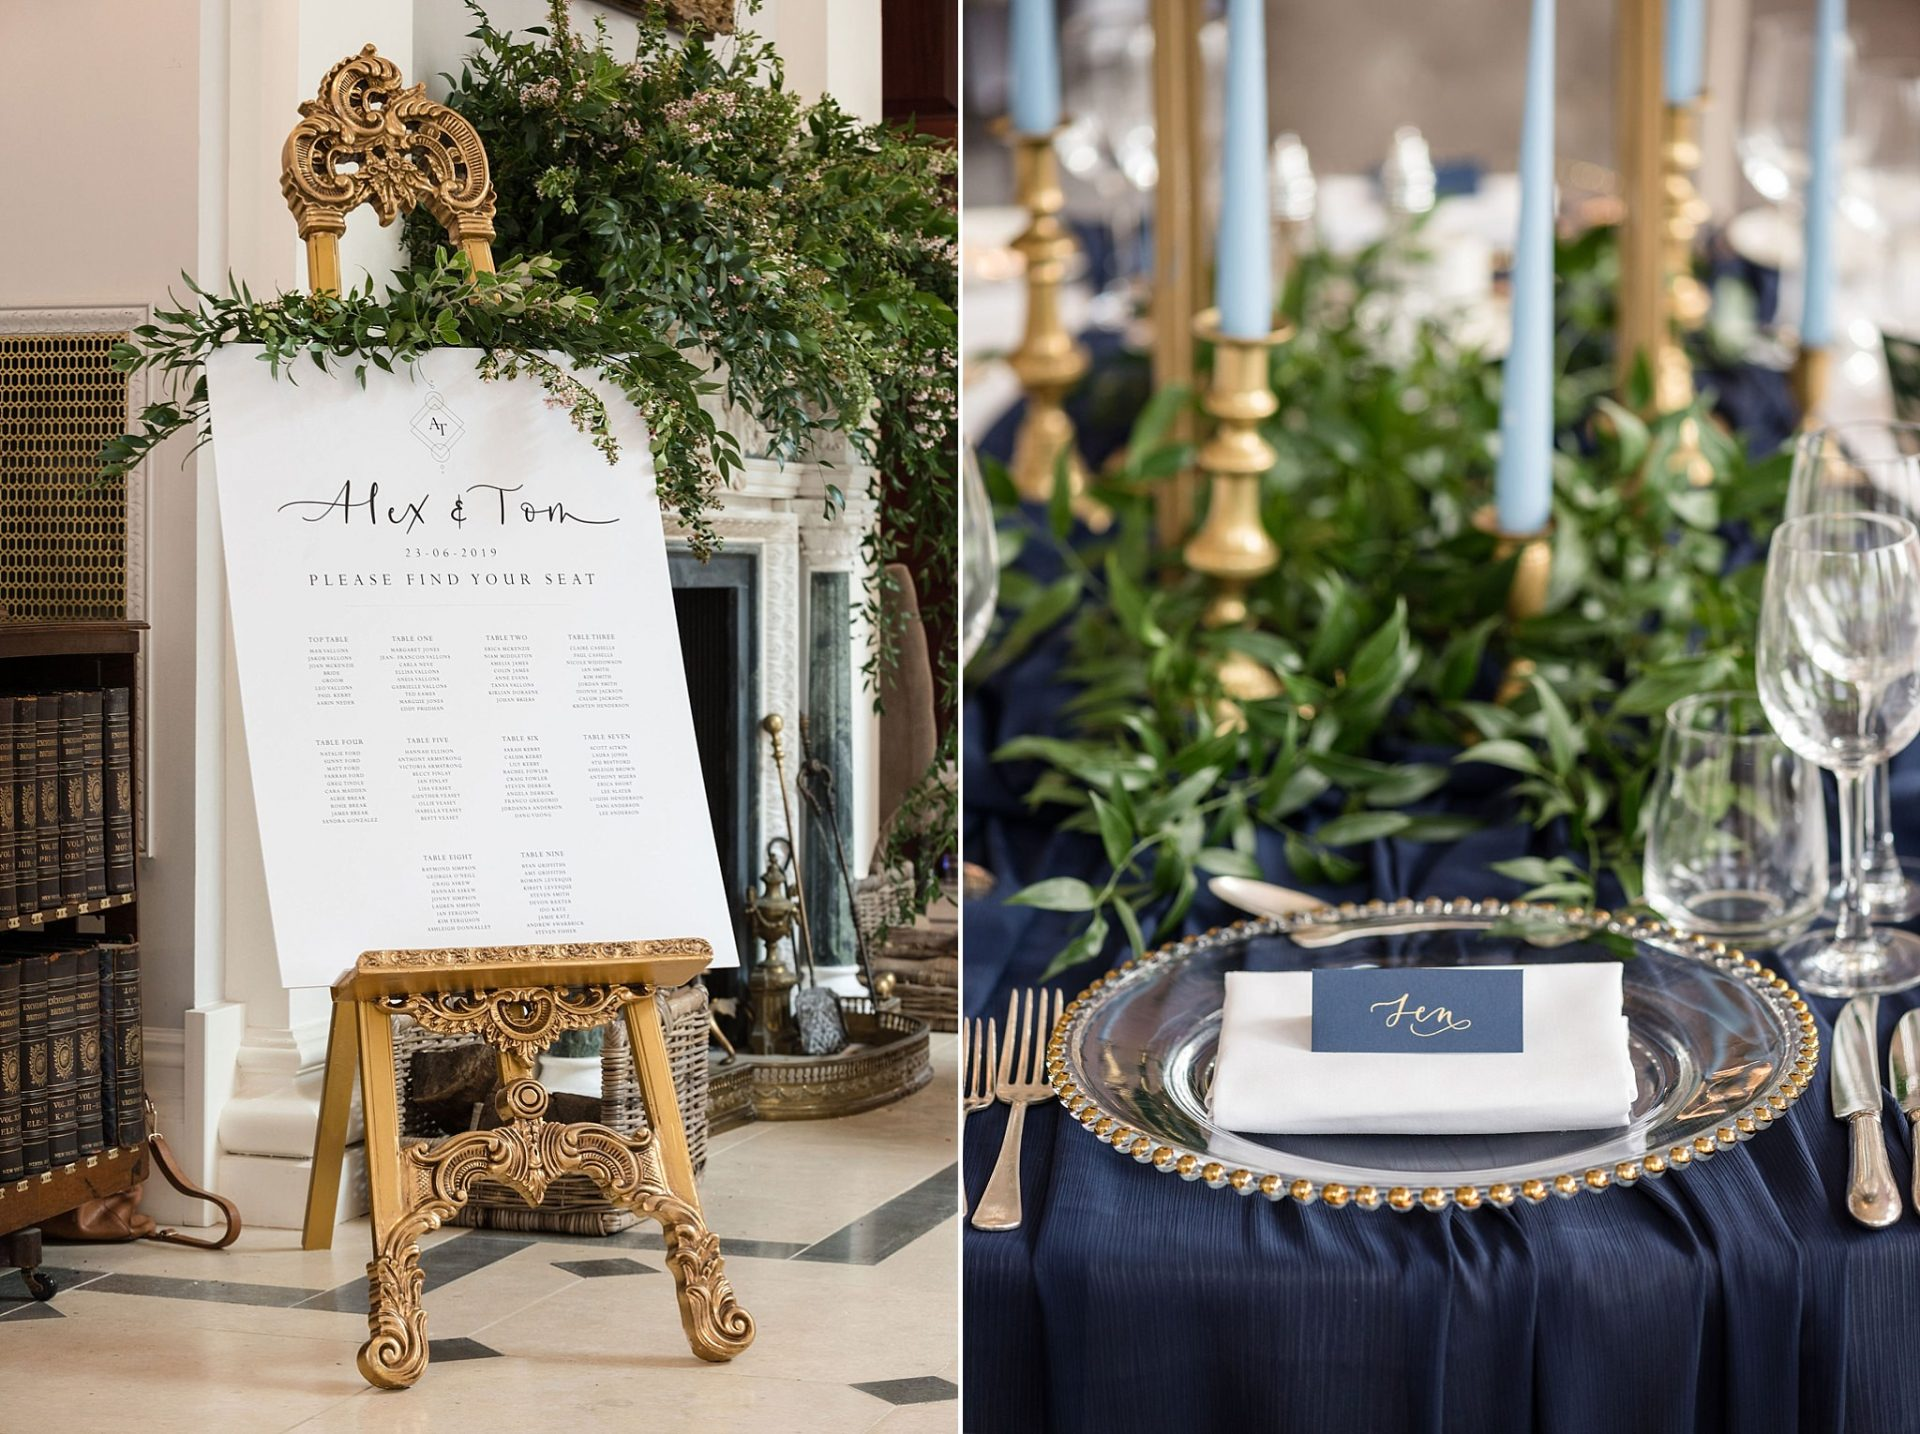 Left: Calligraphy table plan on a gold easel. Right: Navy and gold place-setting with beaded charger plate..